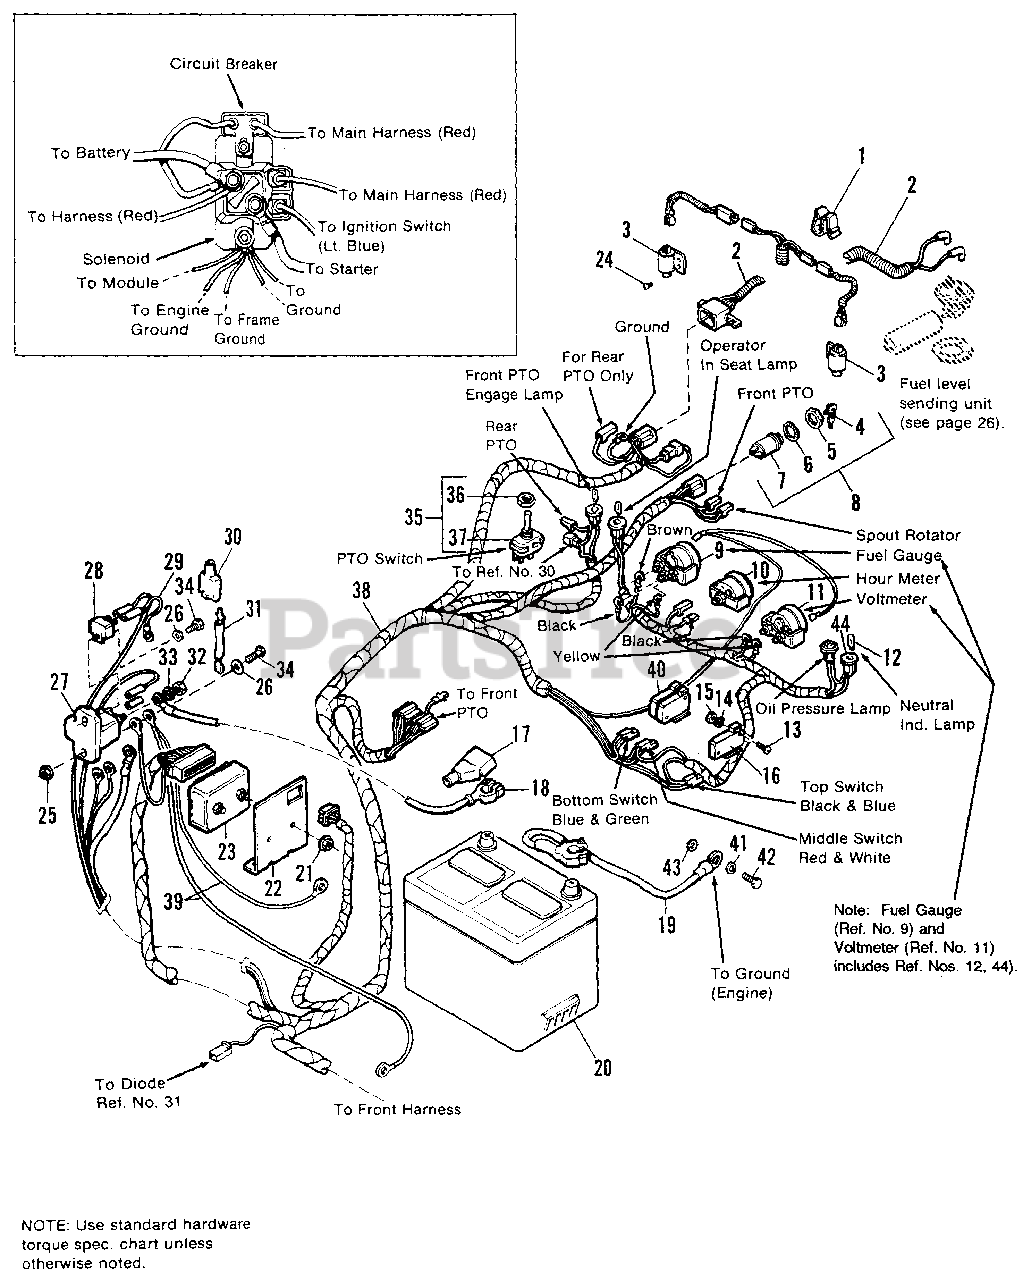 AGCO 1920 H (1691020) - AGCO Garden Tractor, 20hp Ultima ... Manufacturing Wiring Harness Diagram on jvc car stereo wiring diagram, wiring pin diagram, x18 pocket bike wiring diagram, fuse diagram, wiring starter diagram, solenoid diagram, 2003 ford ranger wiring diagram, wiring horn diagram, toyota stereo wiring diagram, wiring kit diagram, switch diagram, wiring schematics, 1930 ford model a wiring diagram, instruction manual diagram, fuel pump diagram, transmission diagram, wheels diagram, relay diagram, 2003 suzuki gsxr 600 wiring diagram, radio wiring diagram,